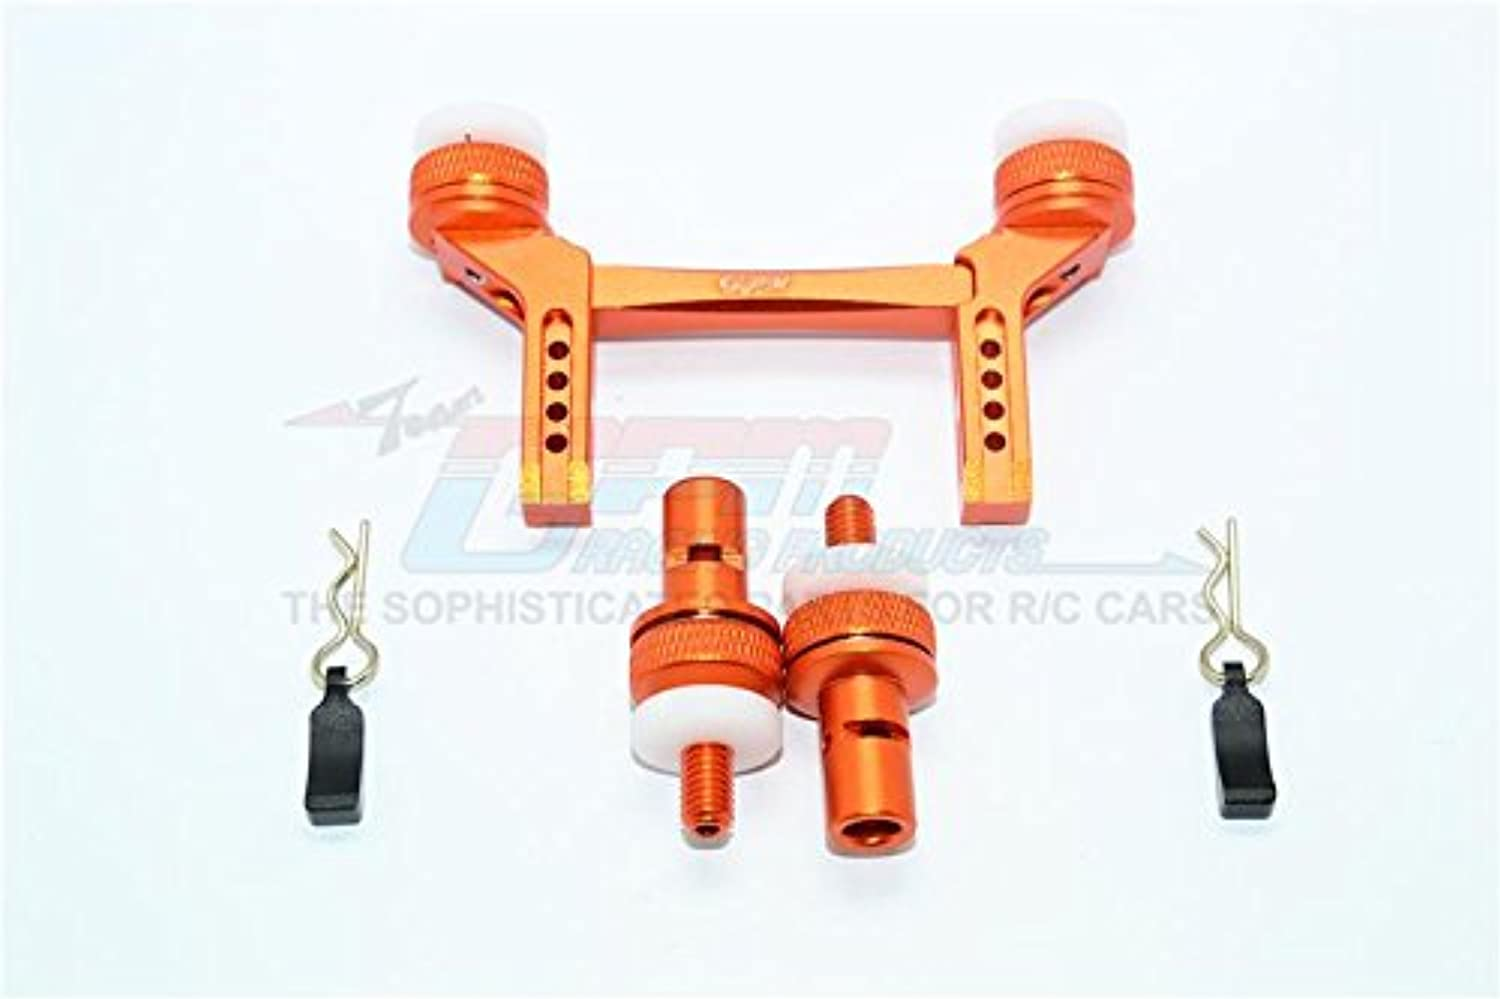 Traxxas TRX-4 Trail Defender Crawler Upgrade Parts Aluminum Front & Rear Magnetic Body Mount - 1 Set orange